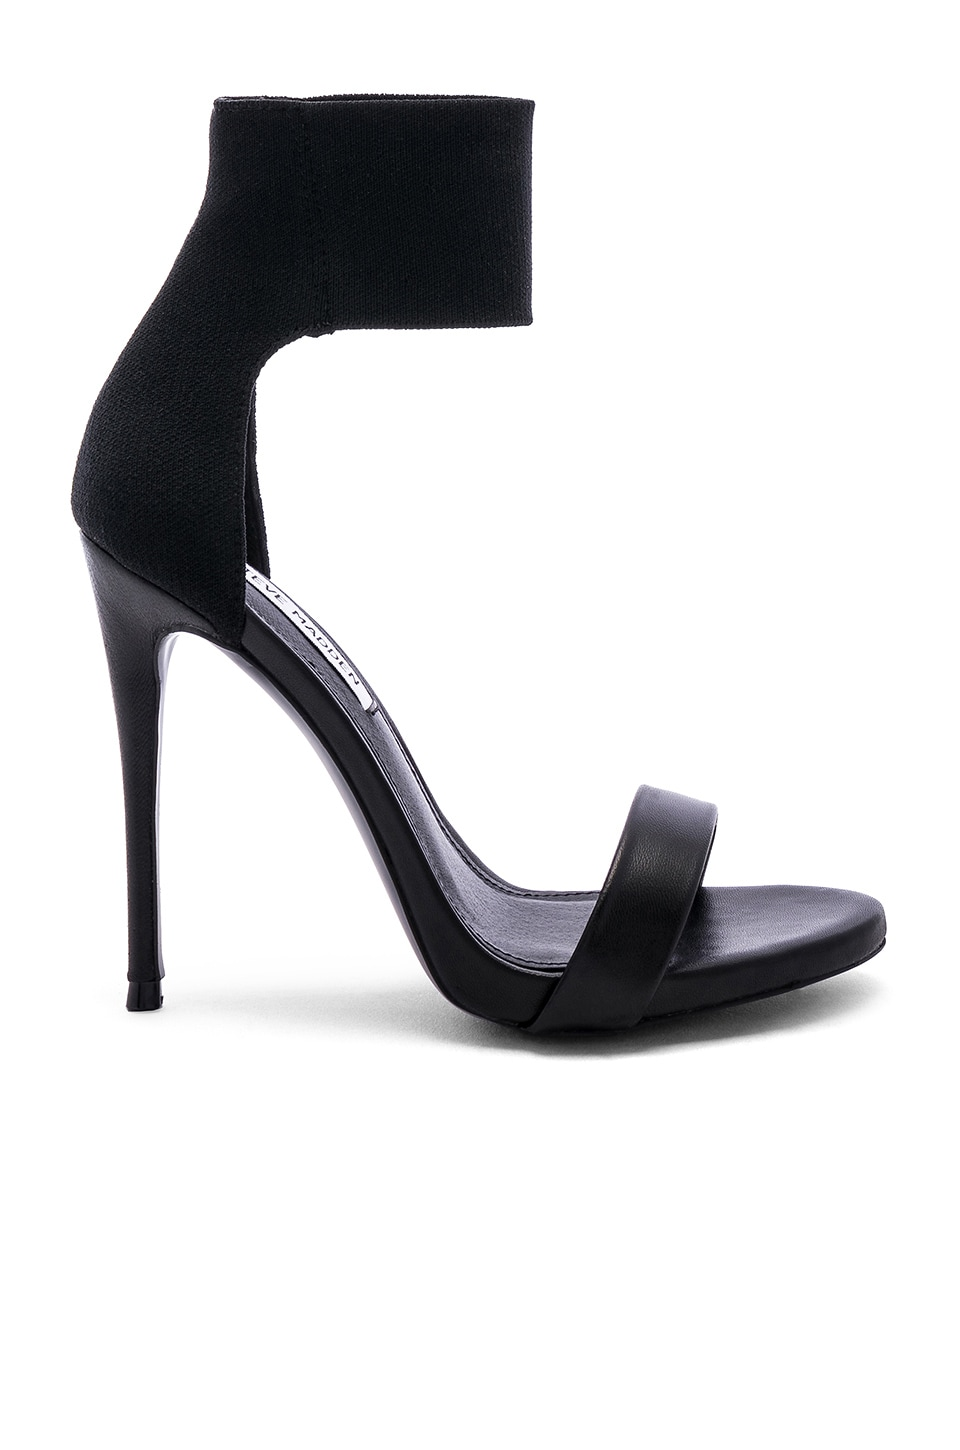 a38dc318f Strap heels - Buy Best Strap heels from Fashion Influencers | Brick & Portal